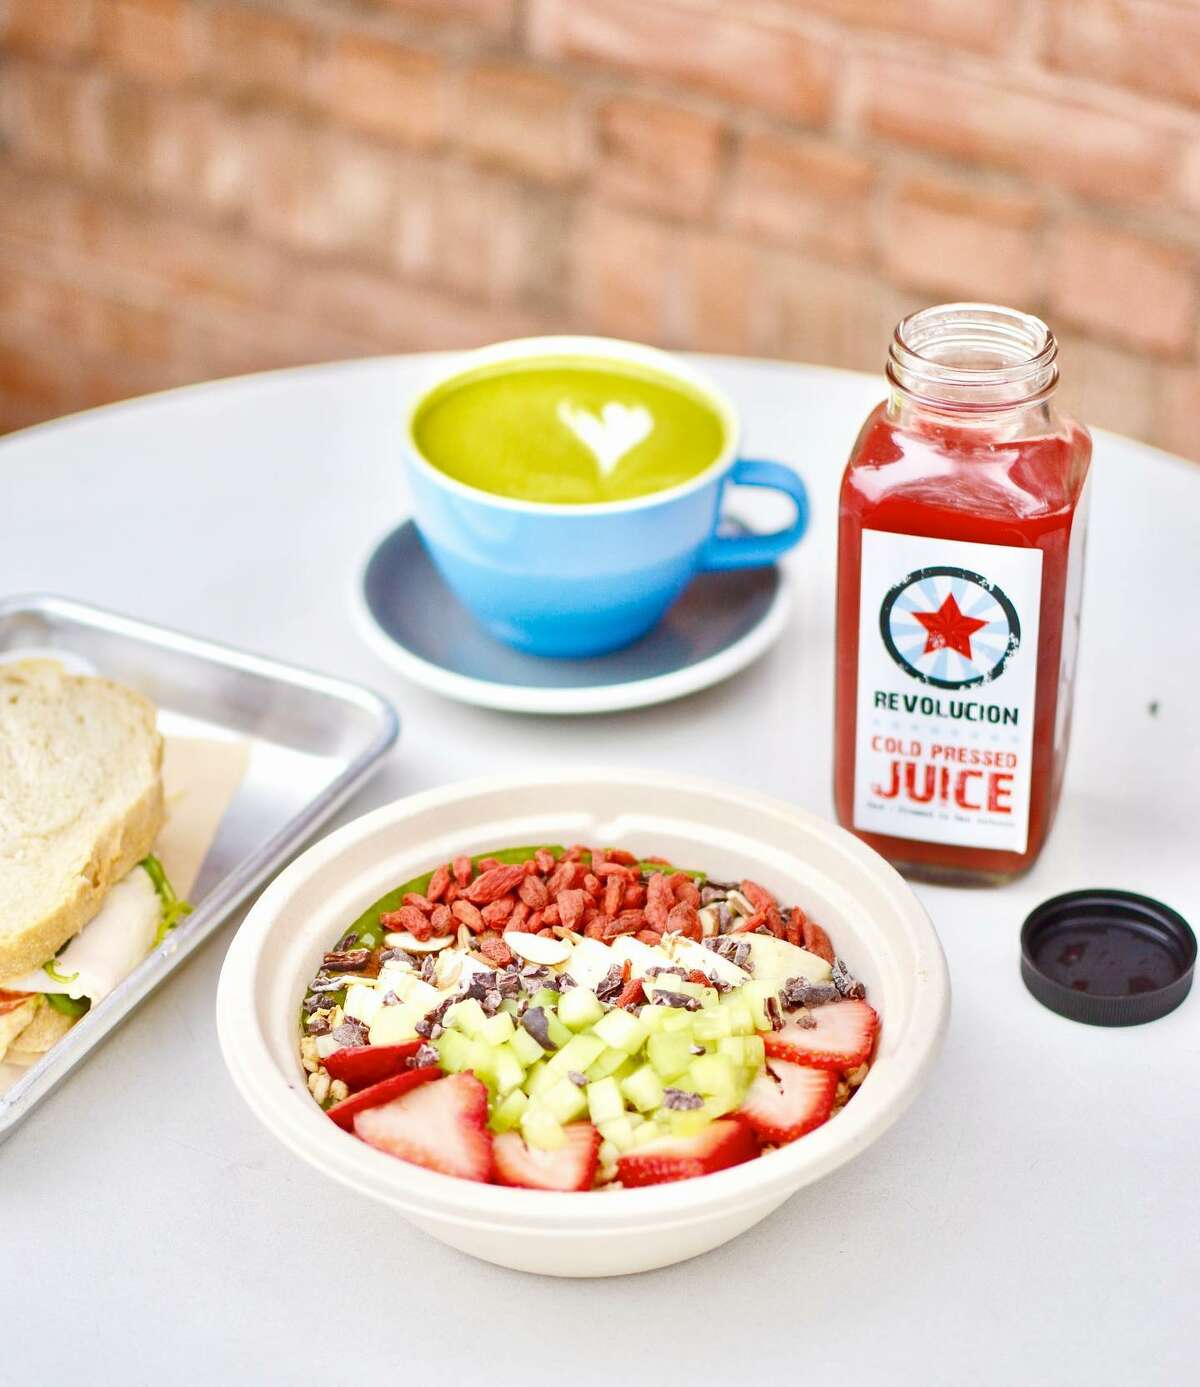 Revolucion has coffee drinks, cold-pressed juices, tacos, salads, acai bowls and other dishes made with health-focused ingredients.